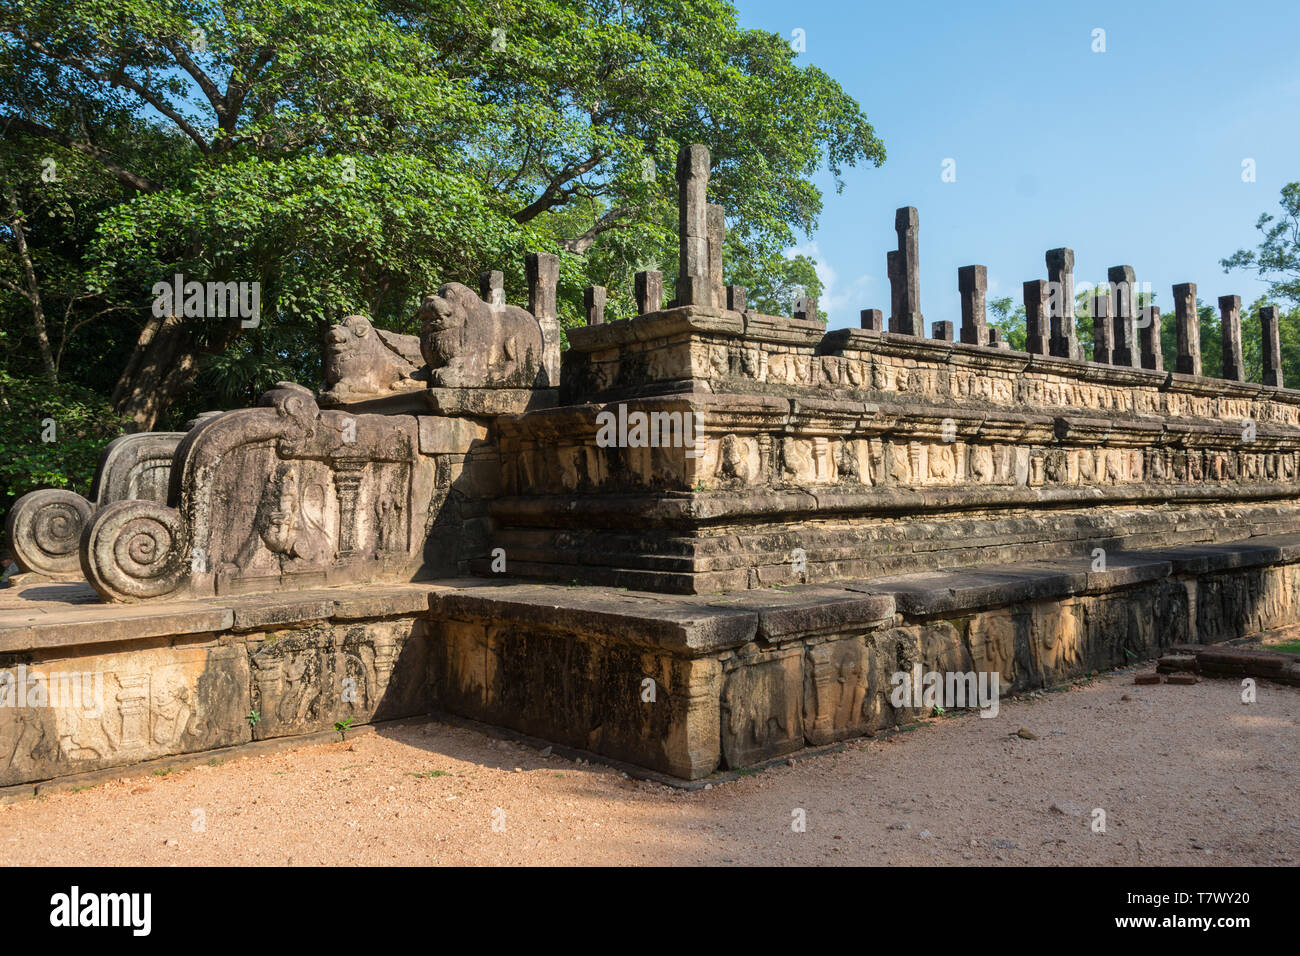 View of the platform and remaining columns of the Council Chamber, or Audience Hall, Polonnaruwa, Sri Lanka - Stock Image